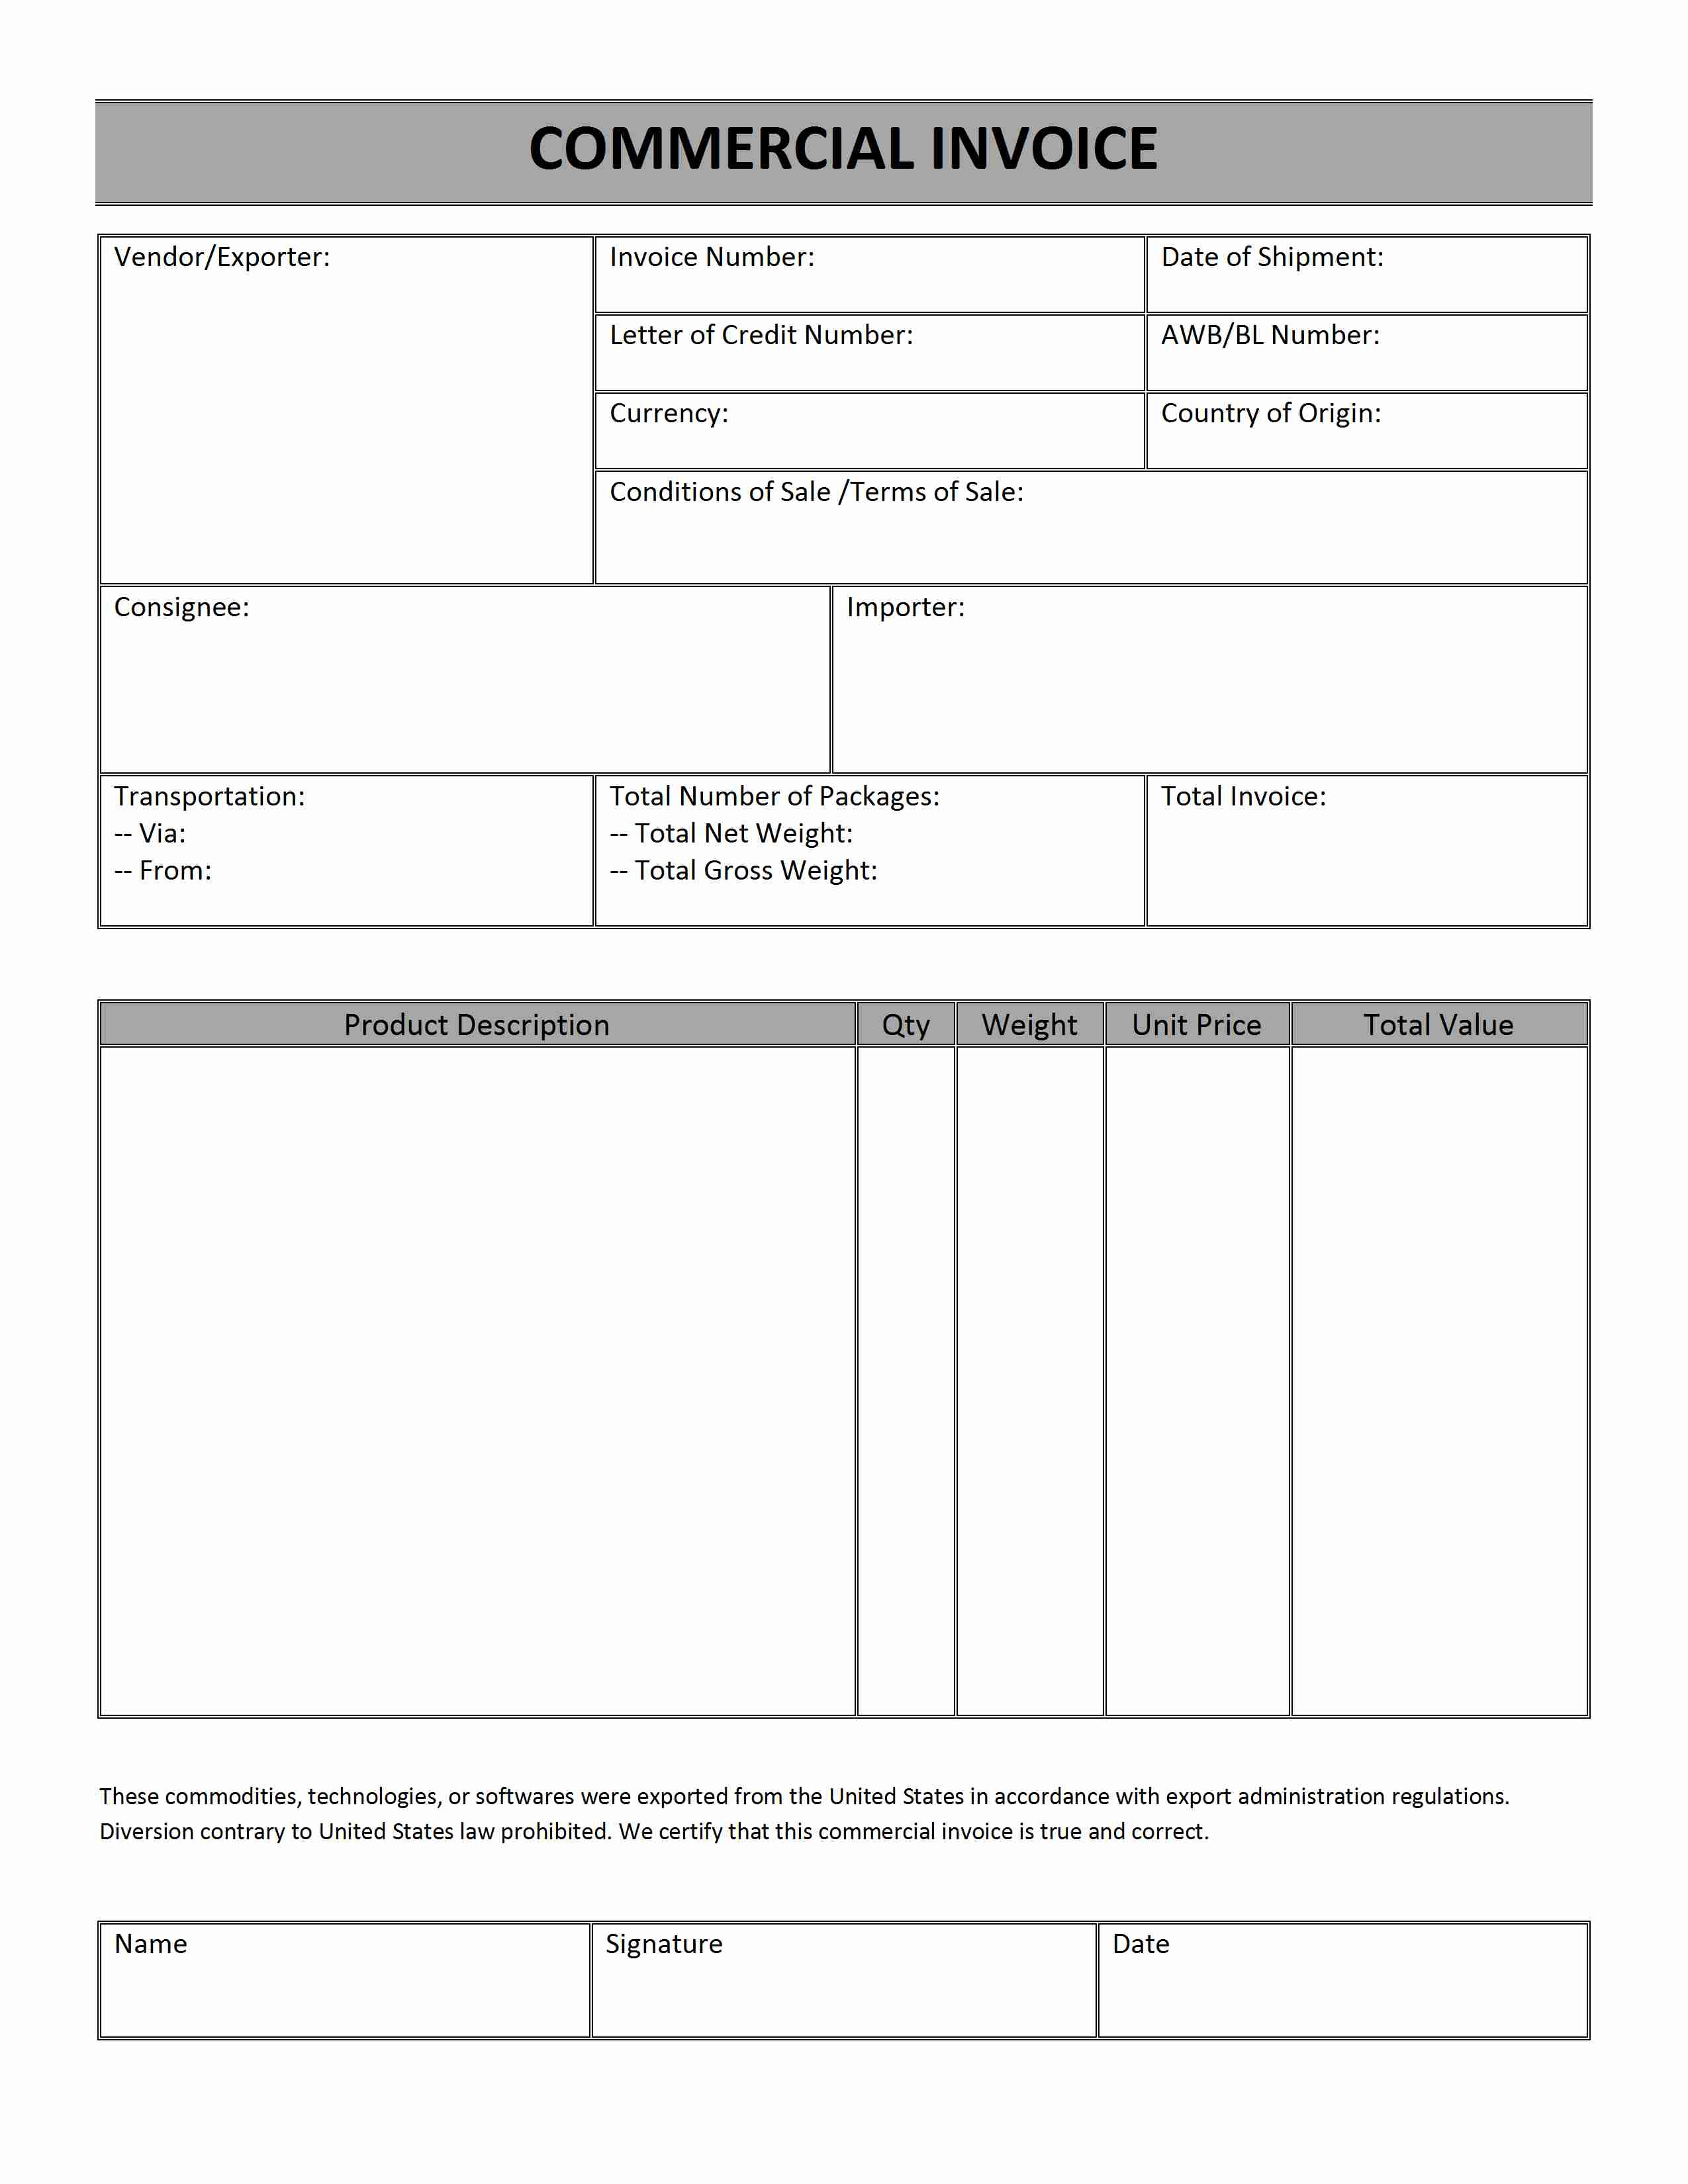 Aaaaeroincus  Picturesque Printable Sales Invoice Simple Invoice Form Free Invoice  With Remarkable Printable Receipt Free  Free Printable Raffle Tickets  Receipt   Printable With Amusing Online Invoice Templates Free Also Auto Repair Invoice Software Free Download In Addition Airbnb Invoice And Invoice Template Microsoft As Well As What Is Credit Invoice Additionally Sample Construction Invoice Template From Happytomco With Aaaaeroincus  Remarkable Printable Sales Invoice Simple Invoice Form Free Invoice  With Amusing Printable Receipt Free  Free Printable Raffle Tickets  Receipt   Printable And Picturesque Online Invoice Templates Free Also Auto Repair Invoice Software Free Download In Addition Airbnb Invoice From Happytomco